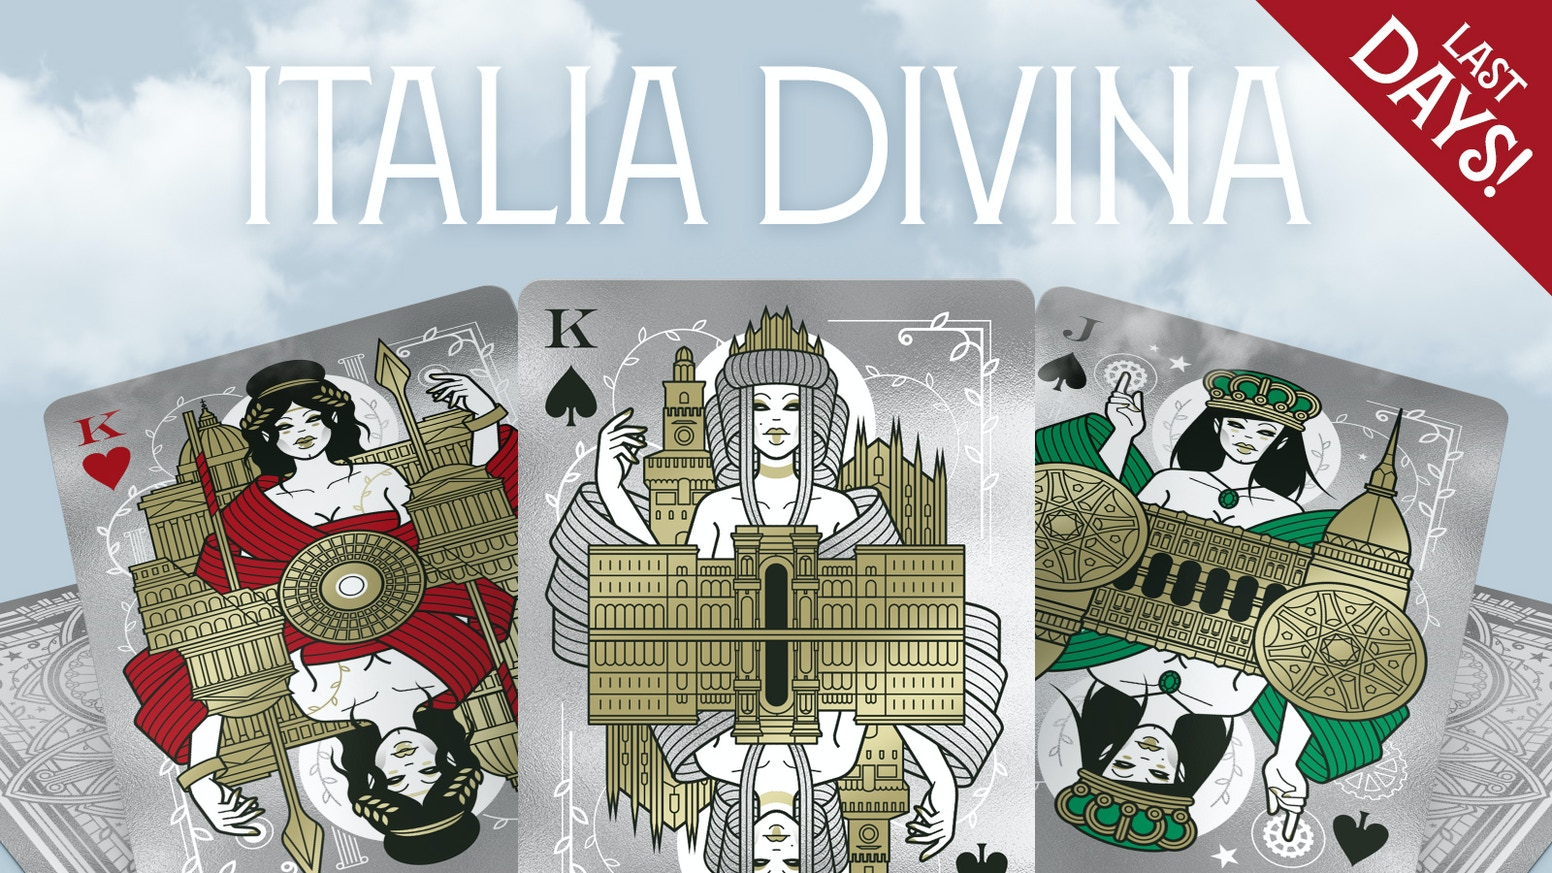 A cross between poker playing cards and Italian travel guides, these modern oracles will introduce you to the Goddesses of Italy.